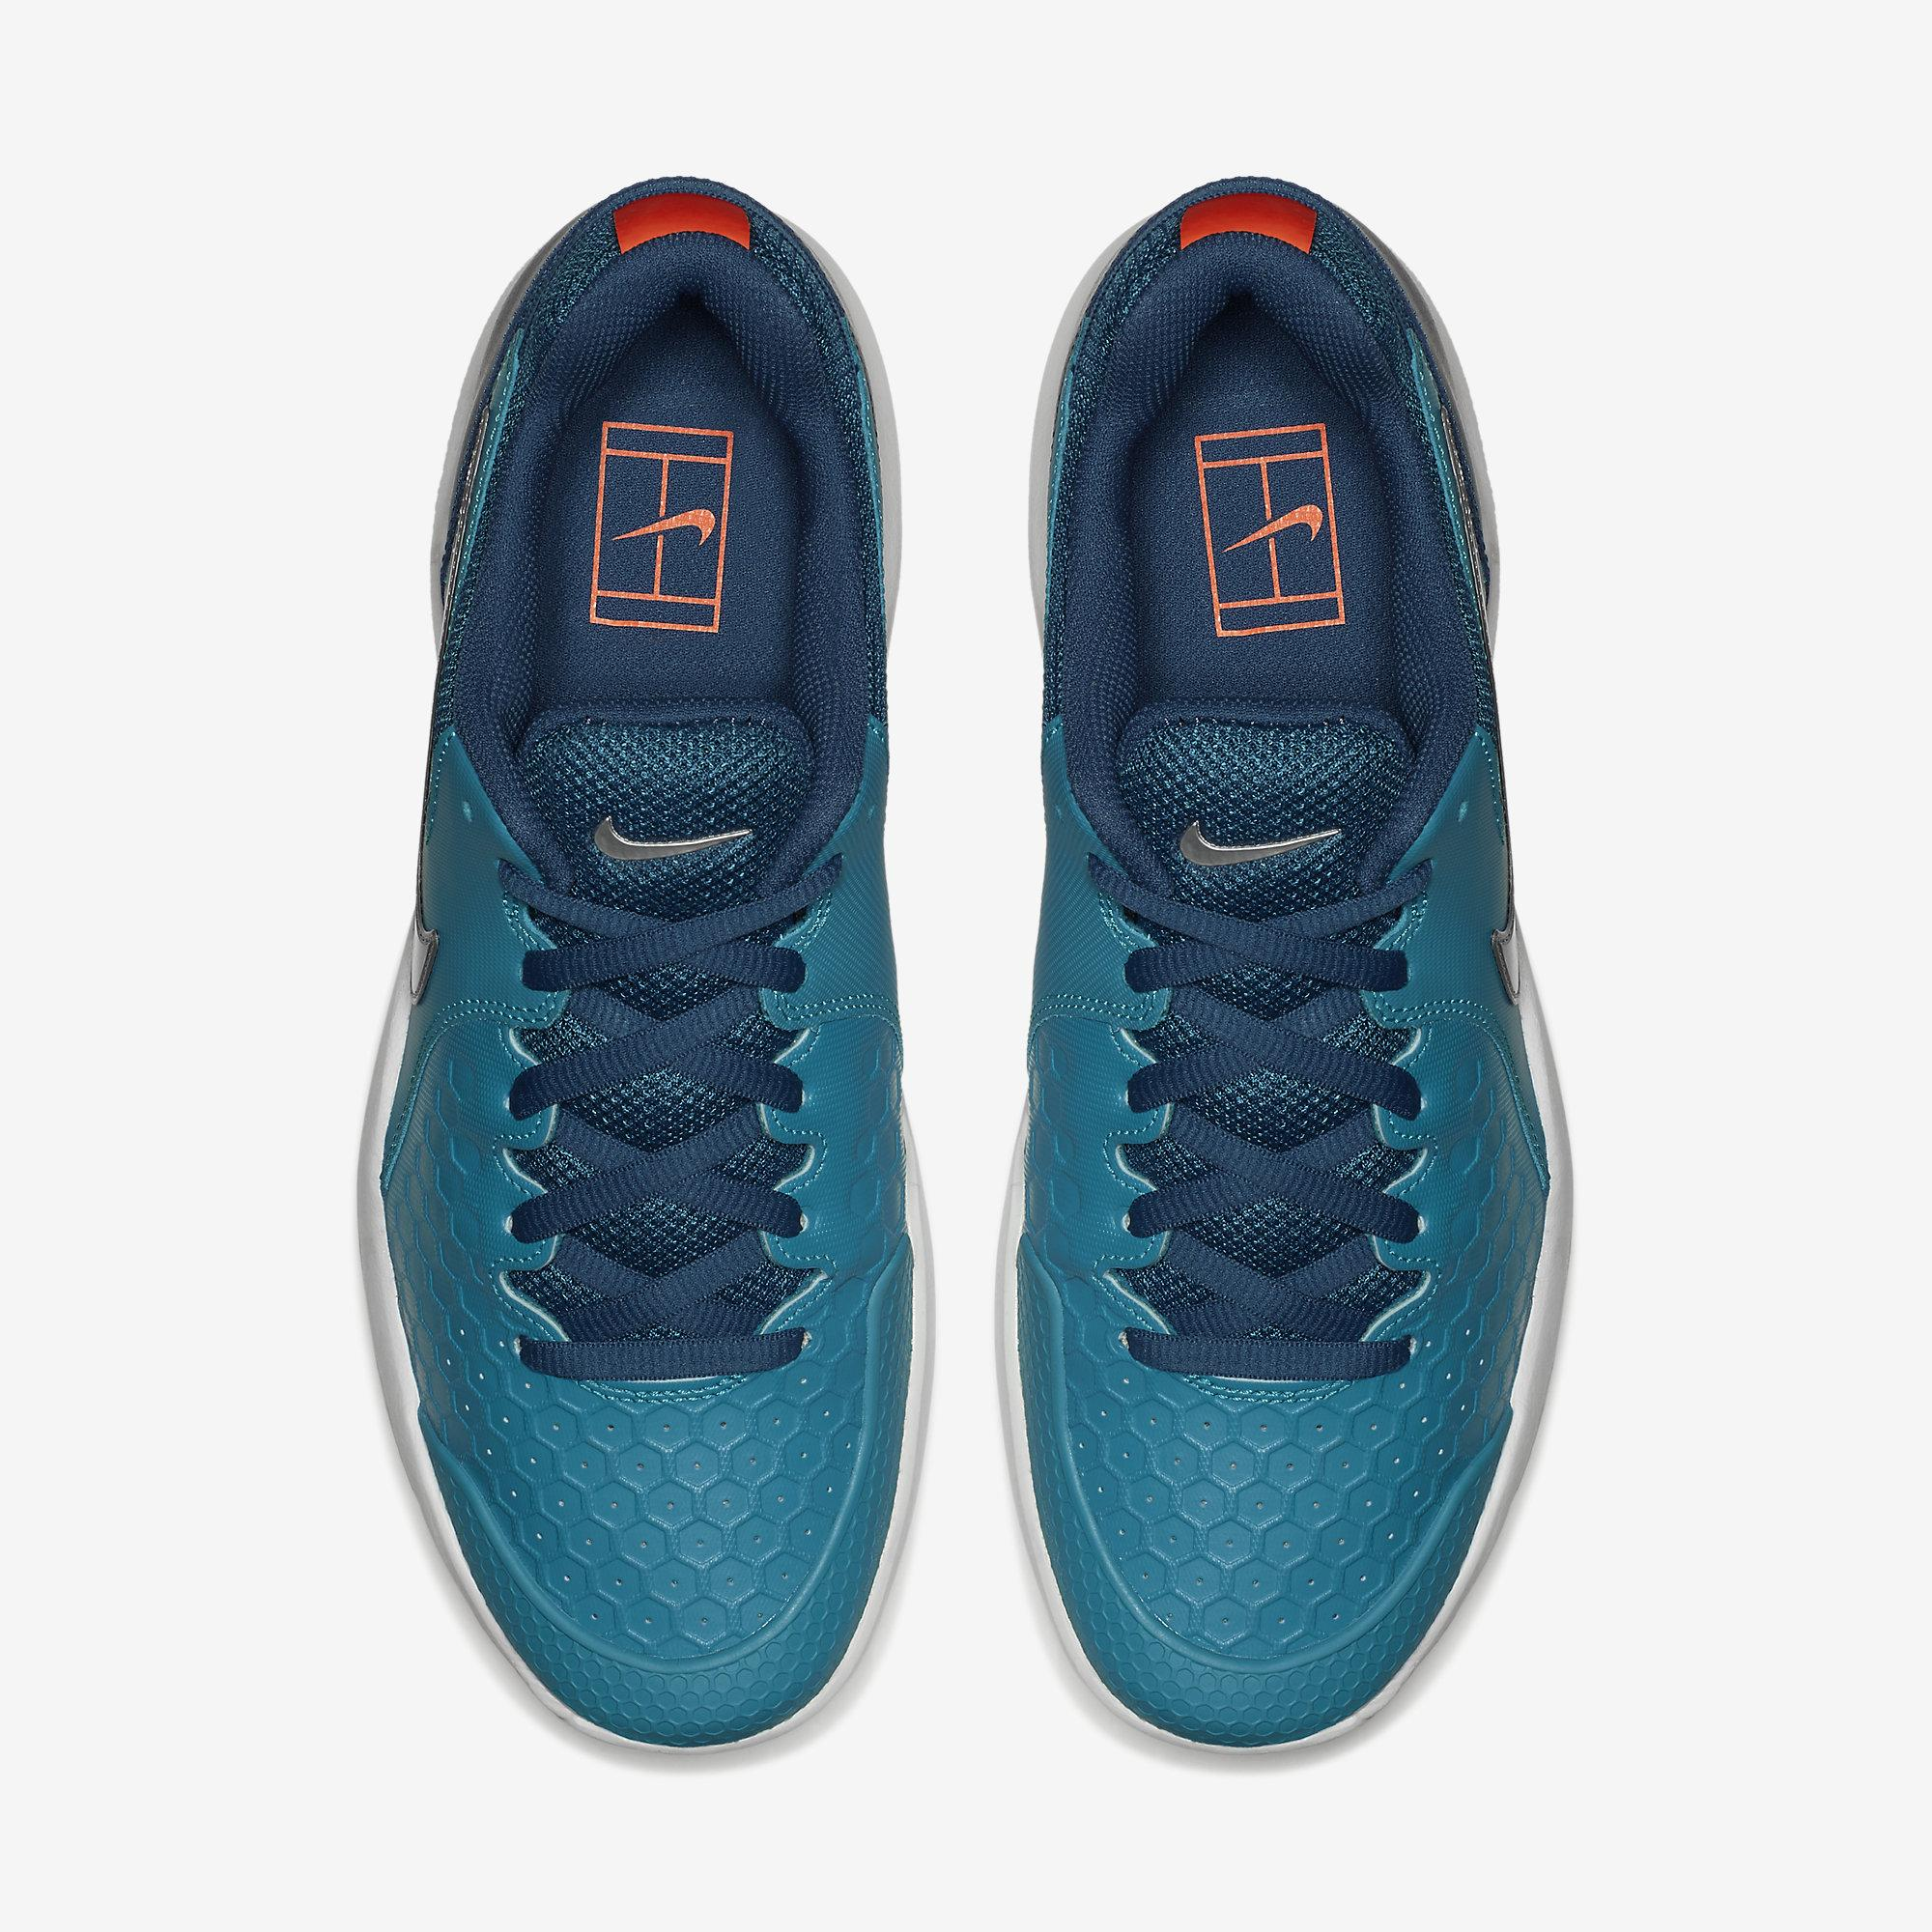 reputable site 07025 819a4 Nike Mens Air Zoom Resistance Tennis Shoes - Neo Turquoise